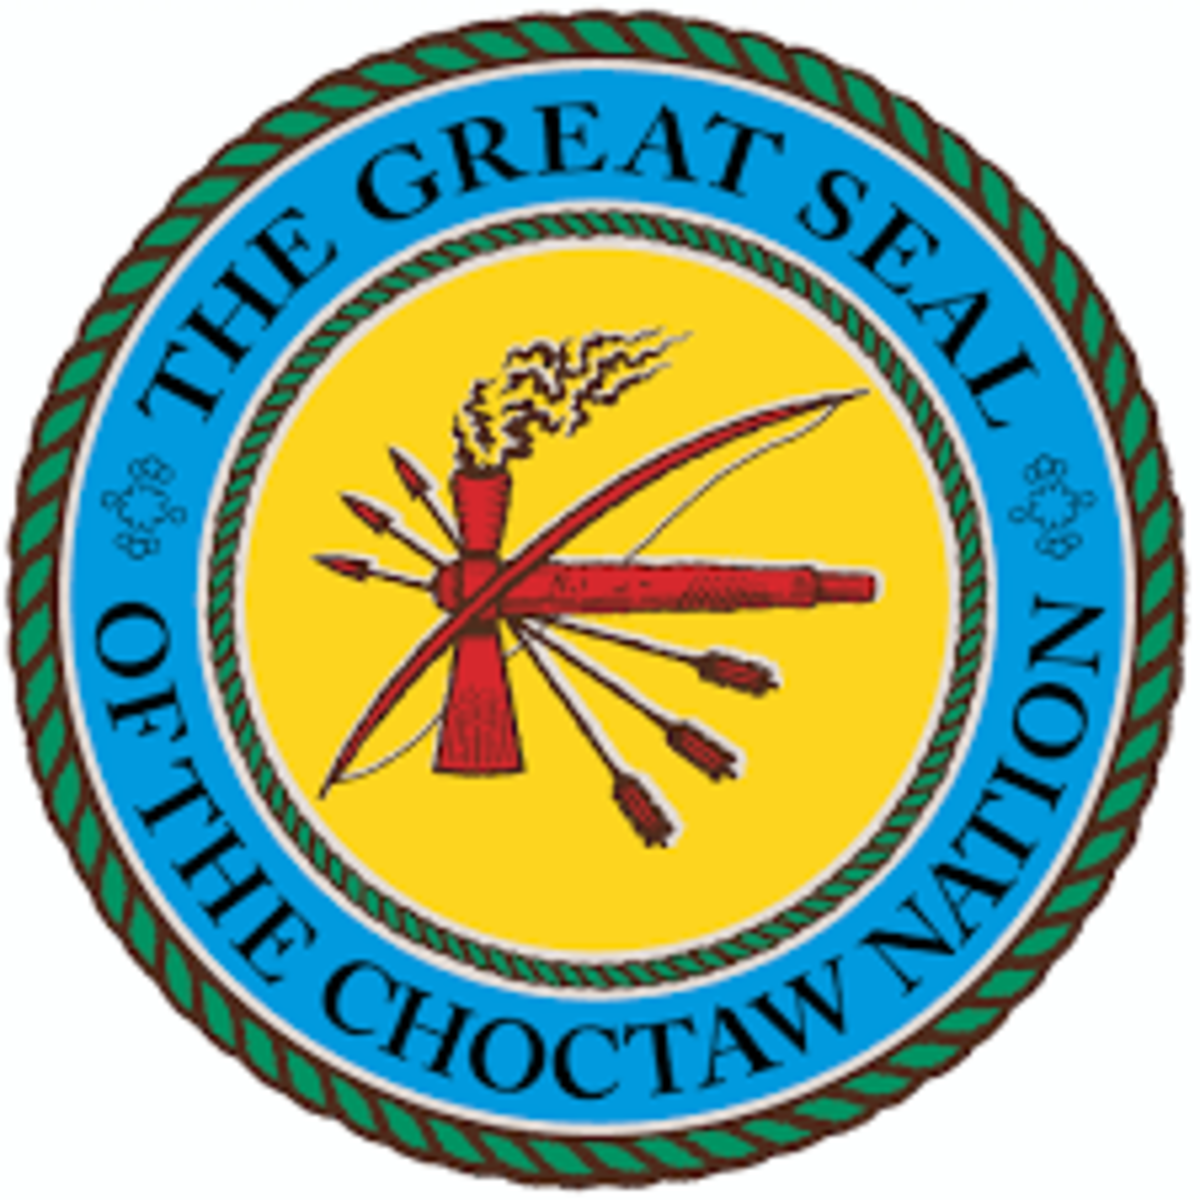 Pictured: The Great Seal of the Choctaw Nation of Oklahoma.